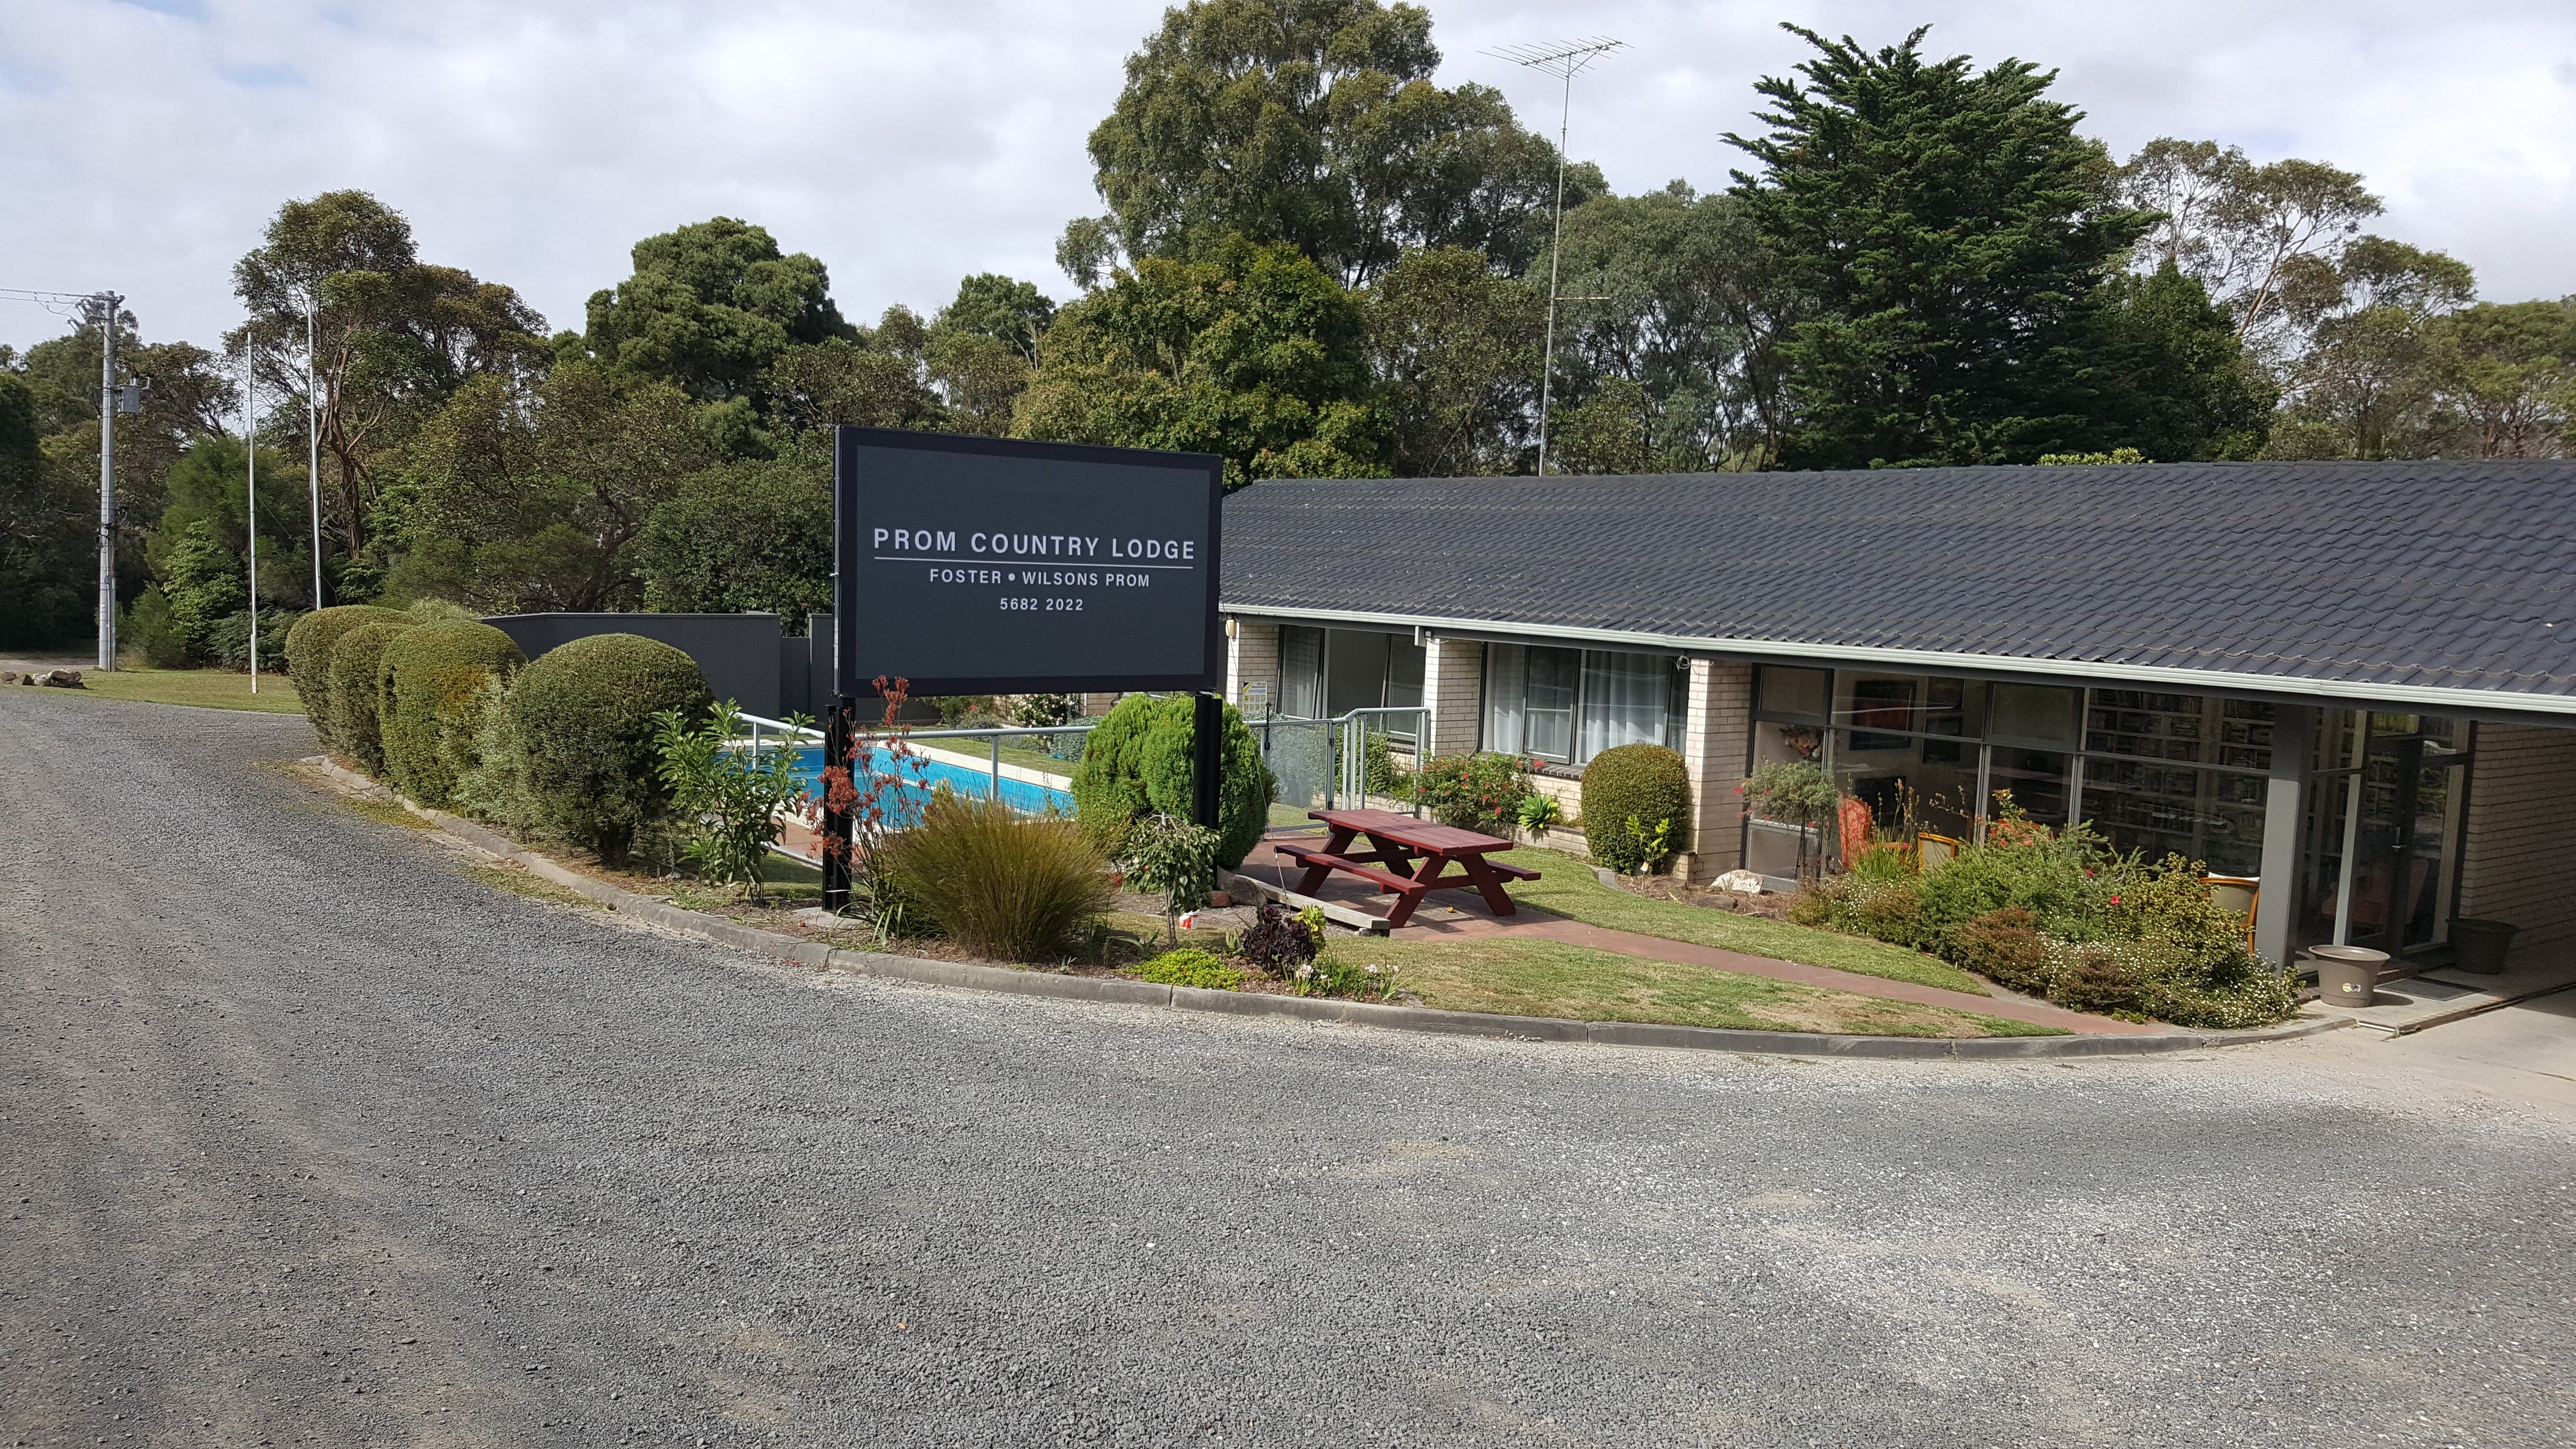 Prom Country Lodge - Accommodation Mt Buller